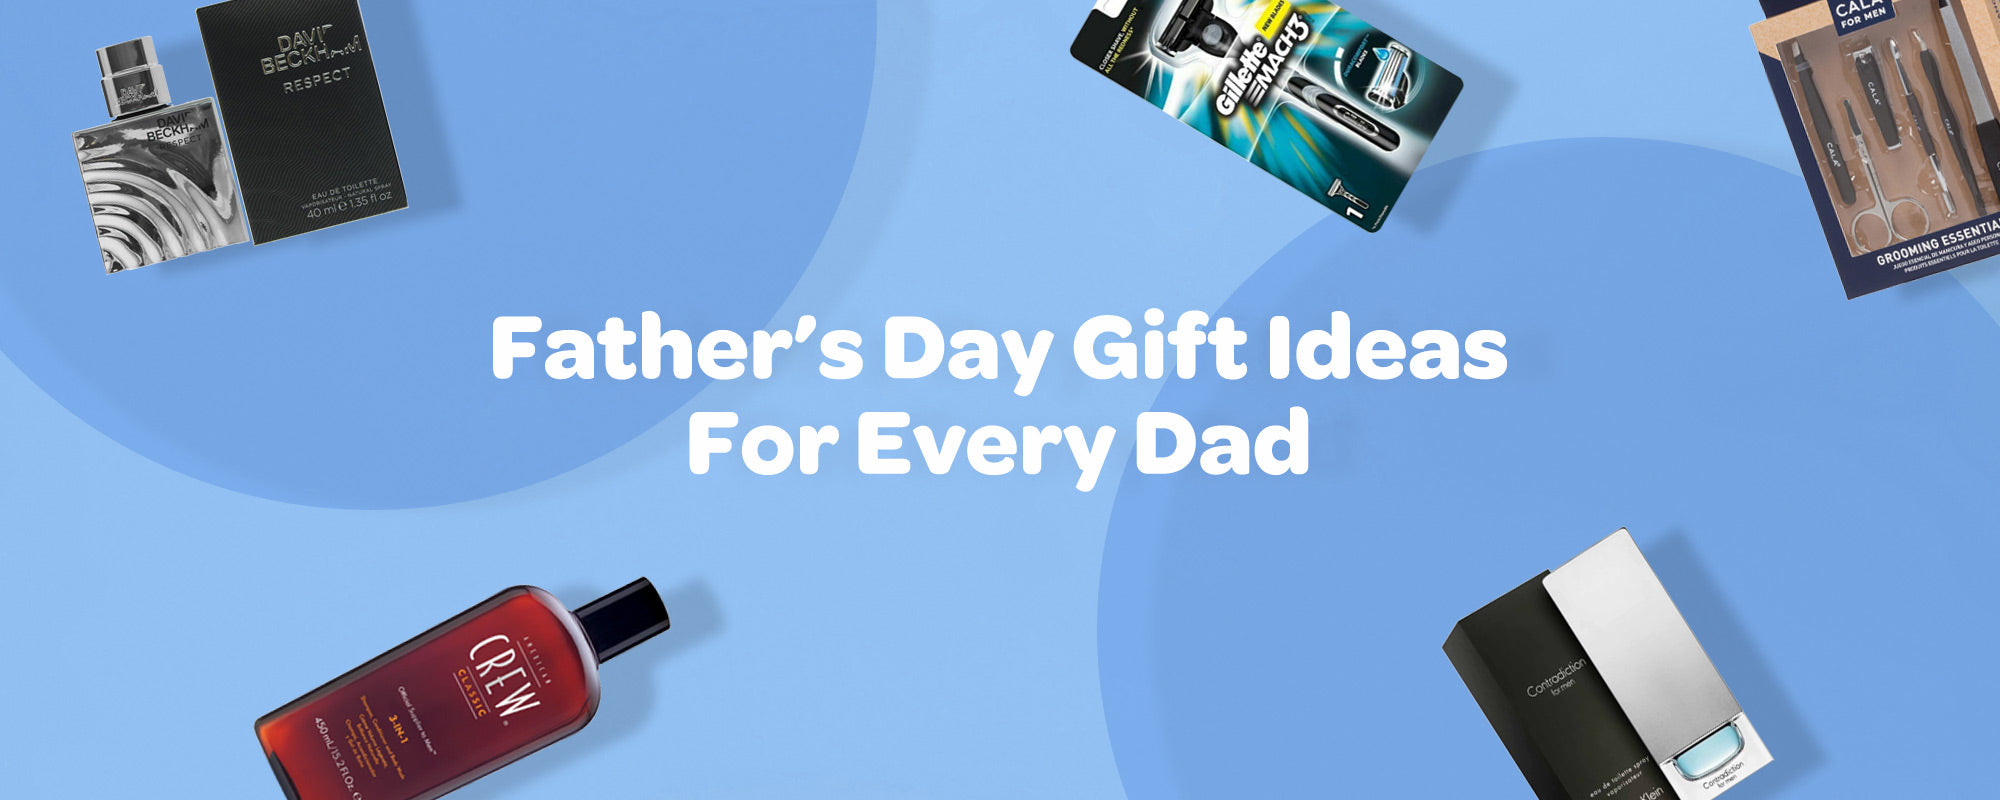 Father's Day Gift Ideas For Every Dad